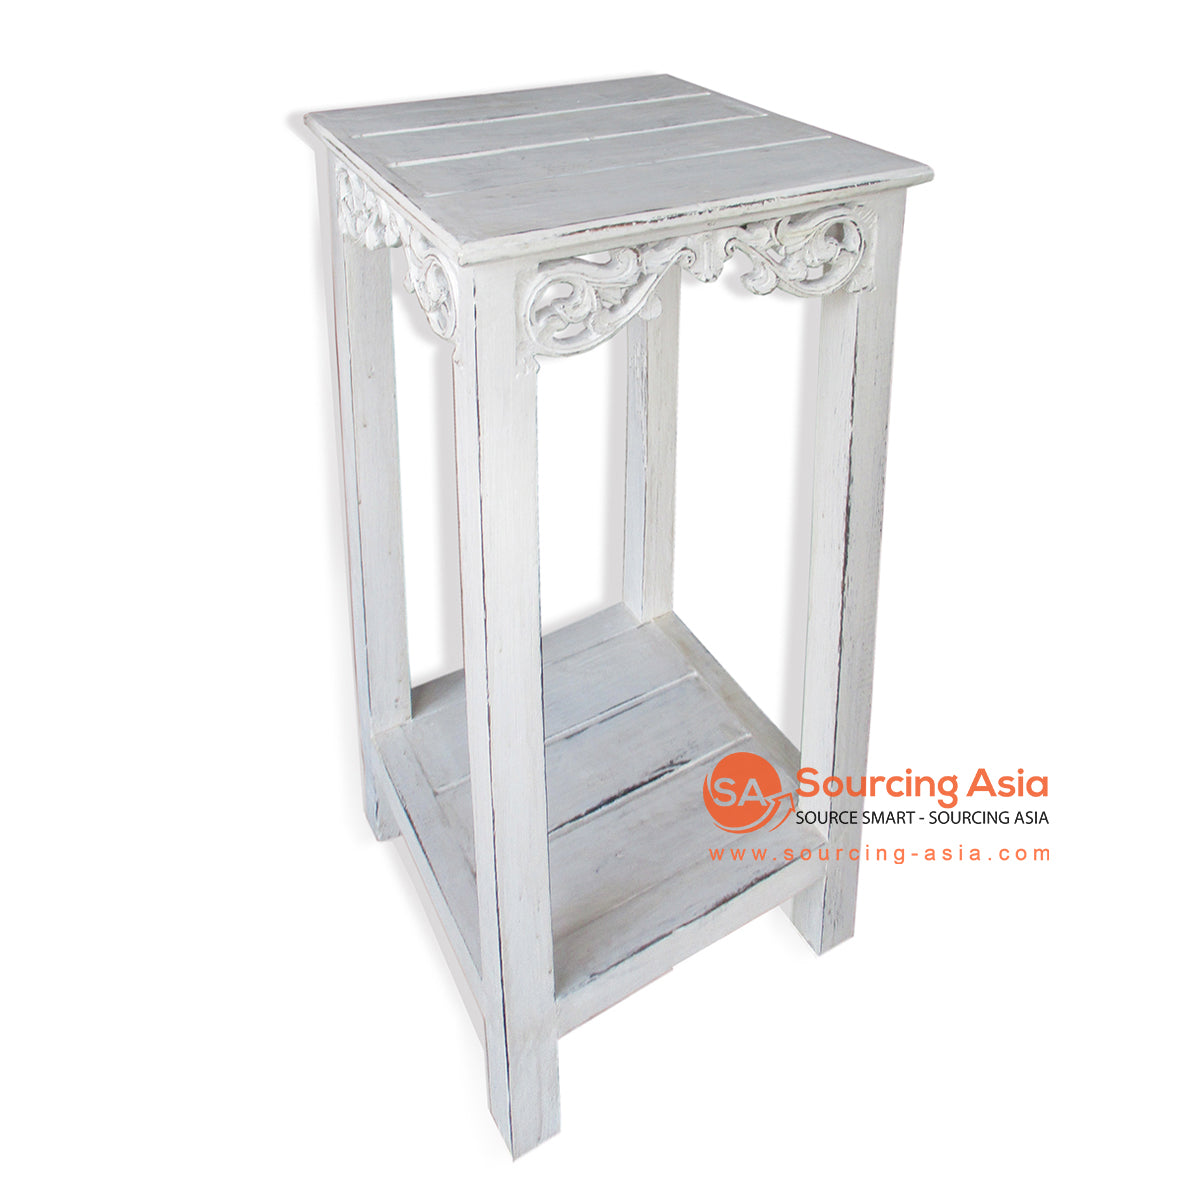 THE007M CONSOLE TABLE WHITE WASH